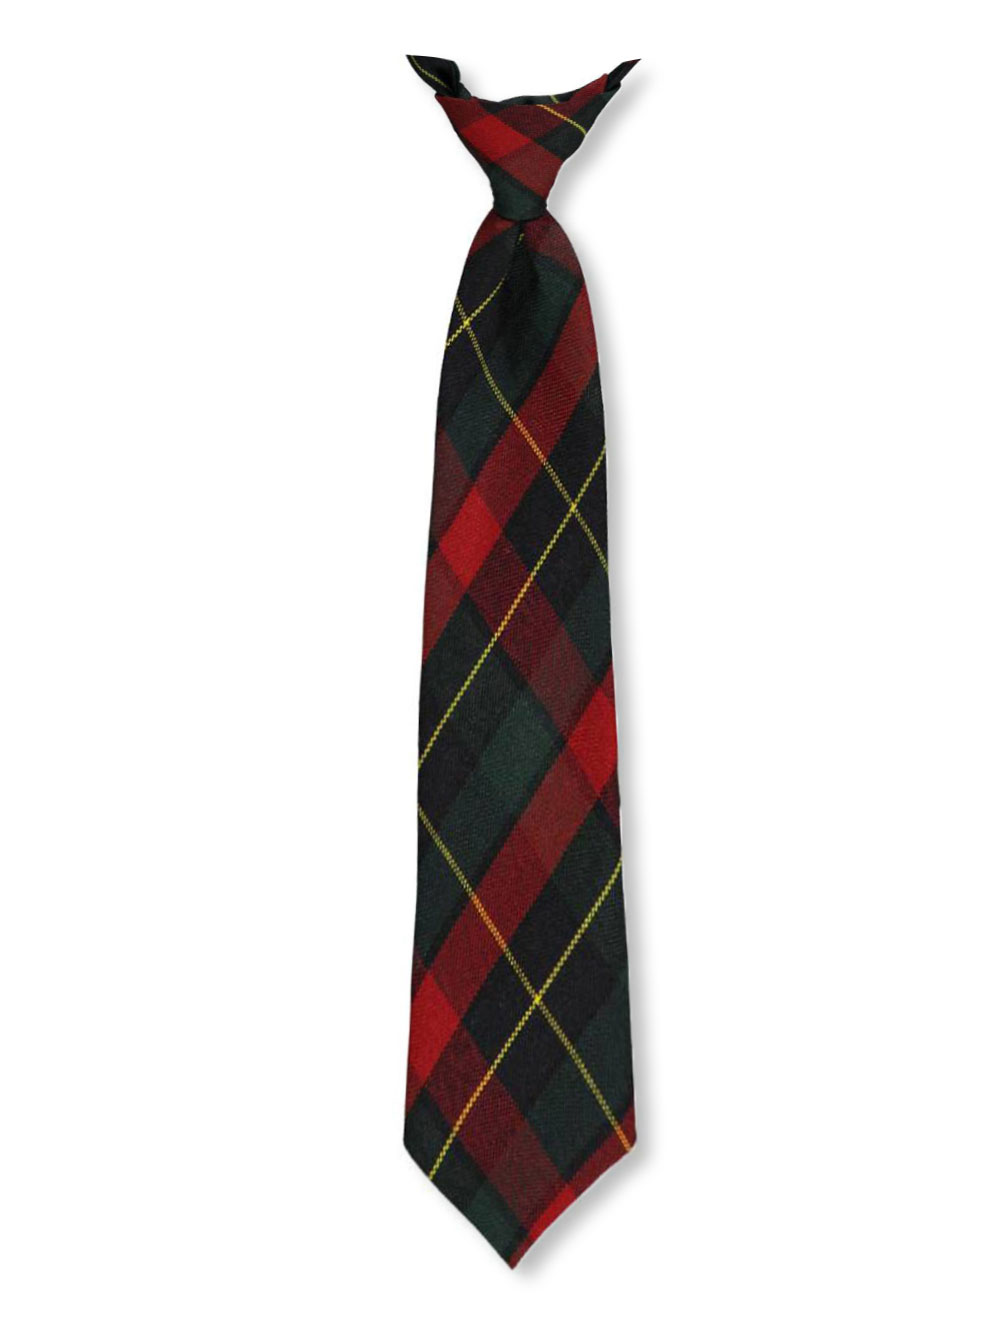 Image of Cookies Brand Adjustable Banded Necktie with Clip  greenredgold plaid 66 14